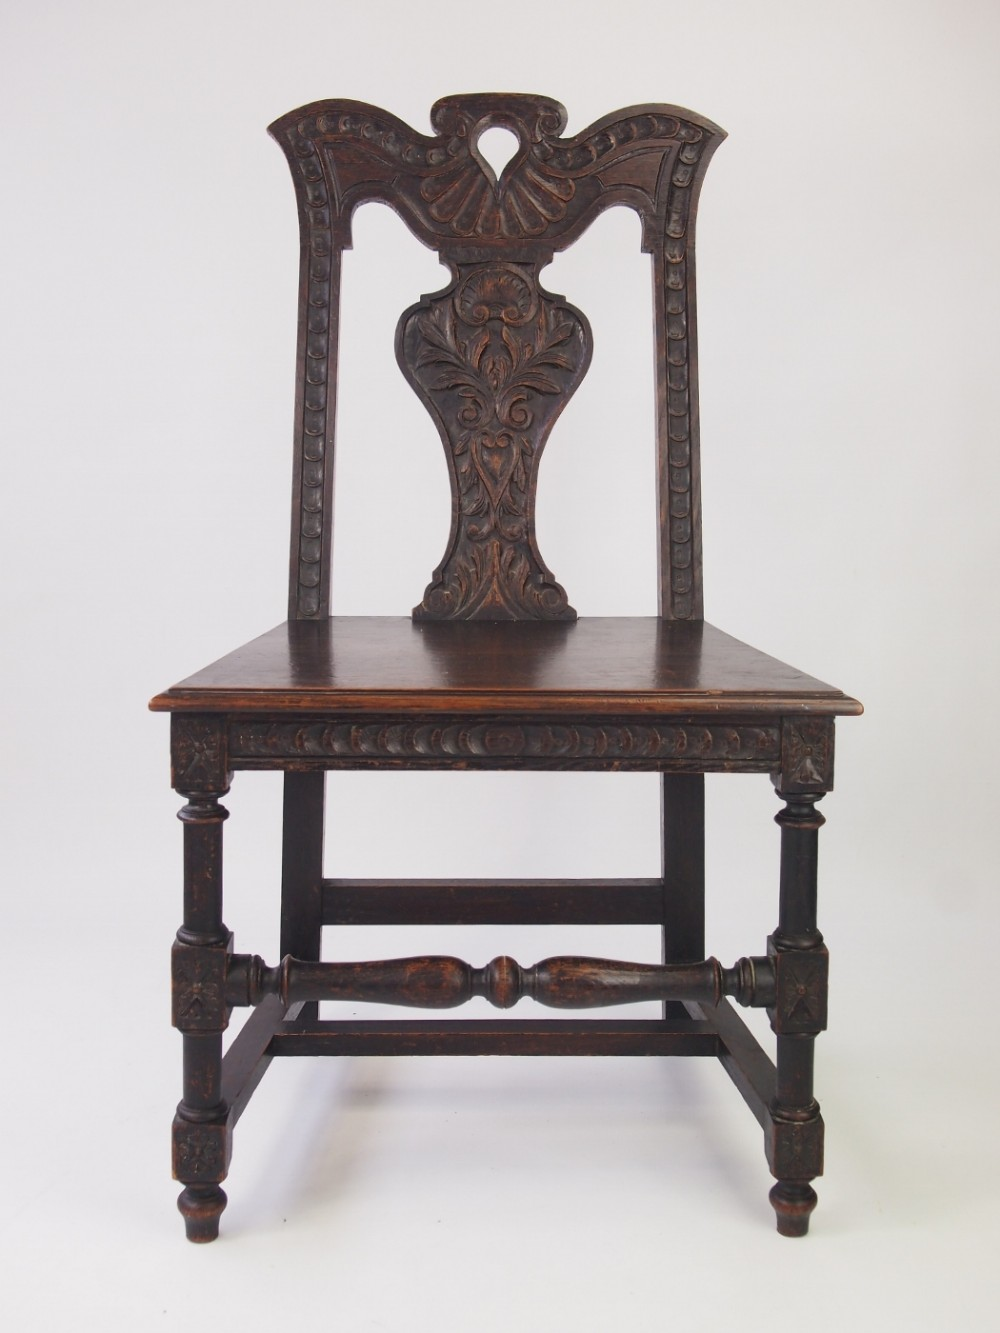 Victorian gothic revival oak hall chair 331322 for Victorian gothic chair